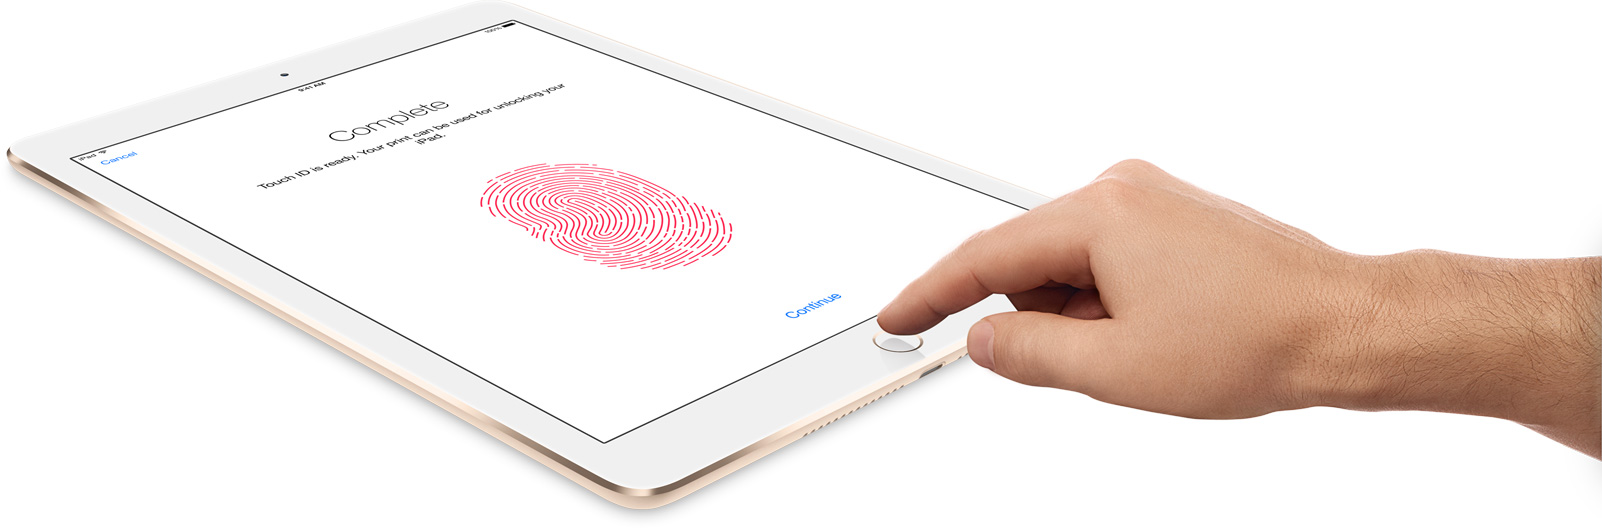 iPad Air 2 gold touch id